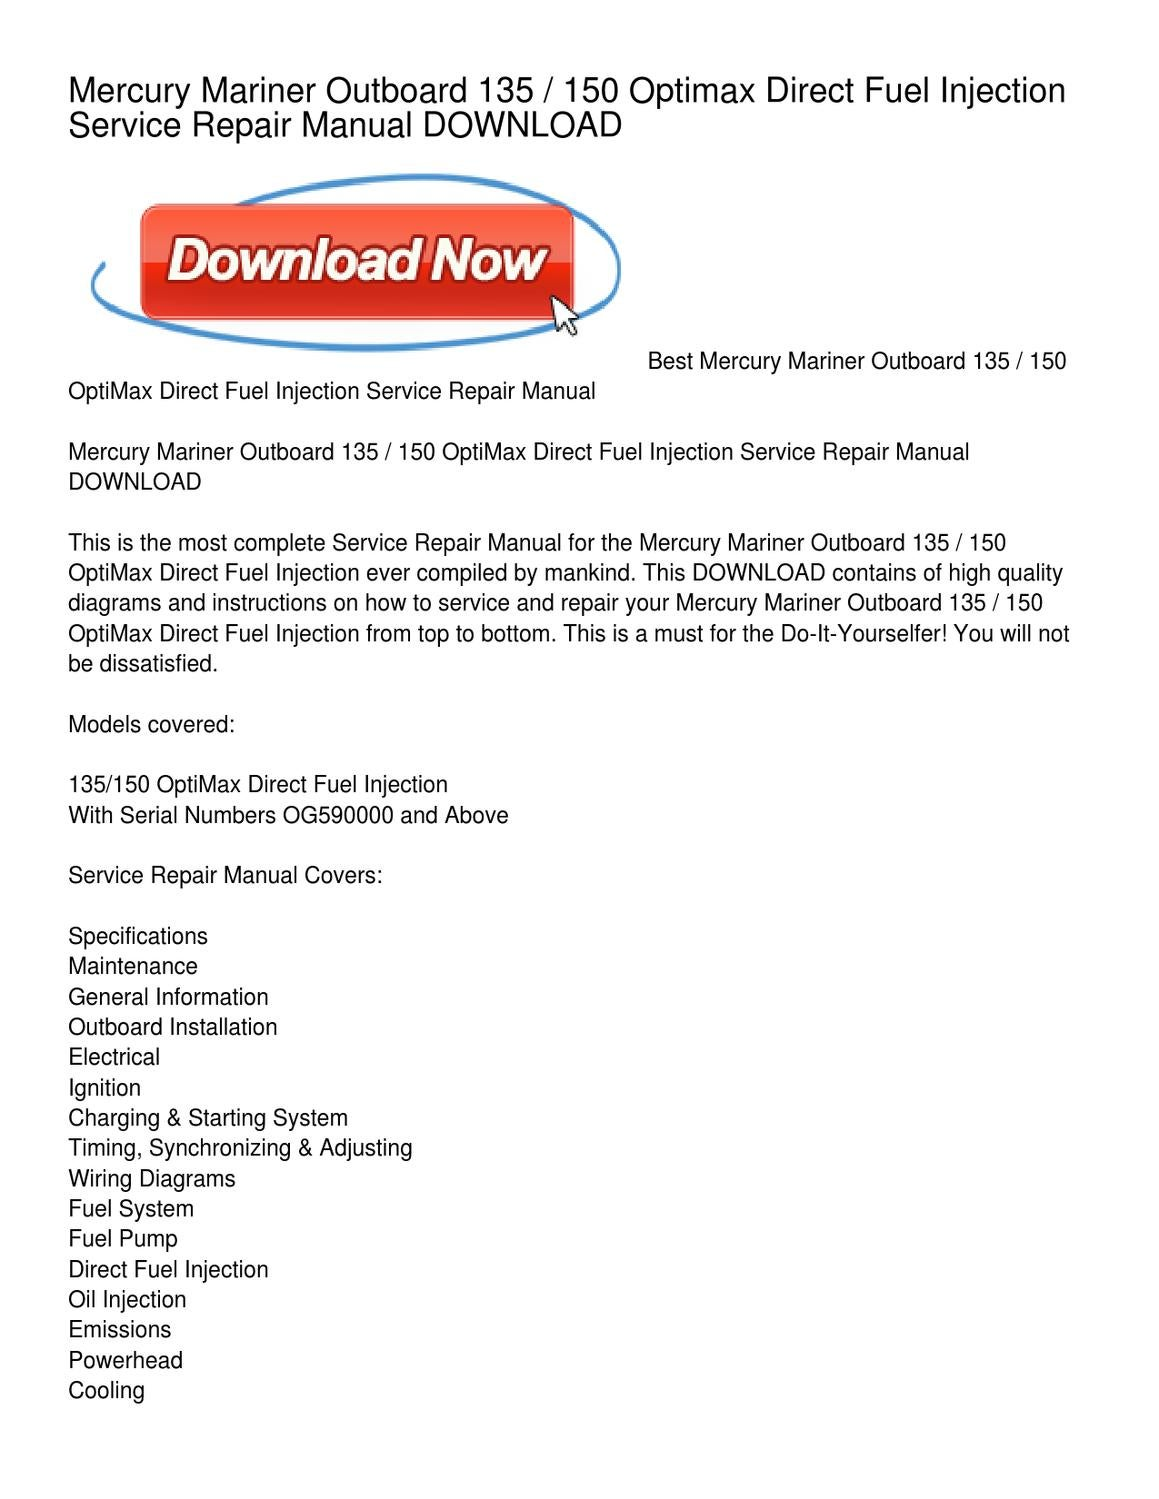 Mercury Mariner Outboard 135 _ 150 Optimax Direct Fuel Injection Service  Repair Manual DOWNLOAD by Robert Thompson - issuu